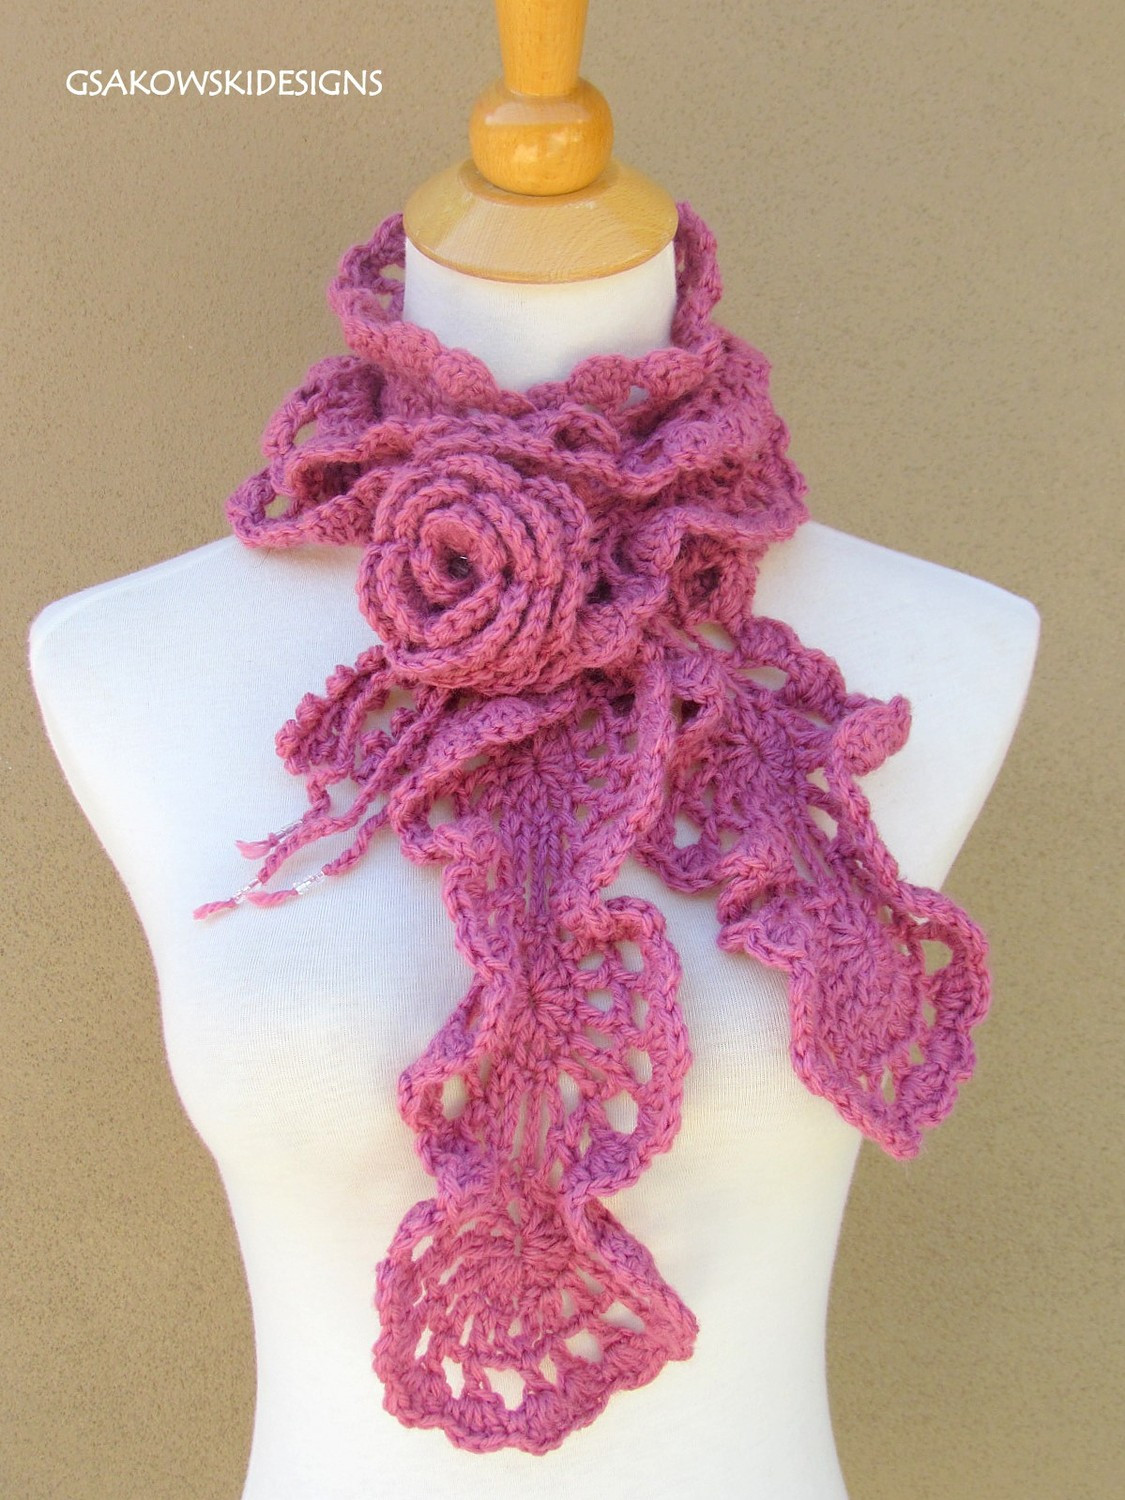 Crochet Scarf Patterns Fresh 43 Crocheting Patterns for Scarves Crochet Dreamz Alana Of Charming 49 Models Crochet Scarf Patterns